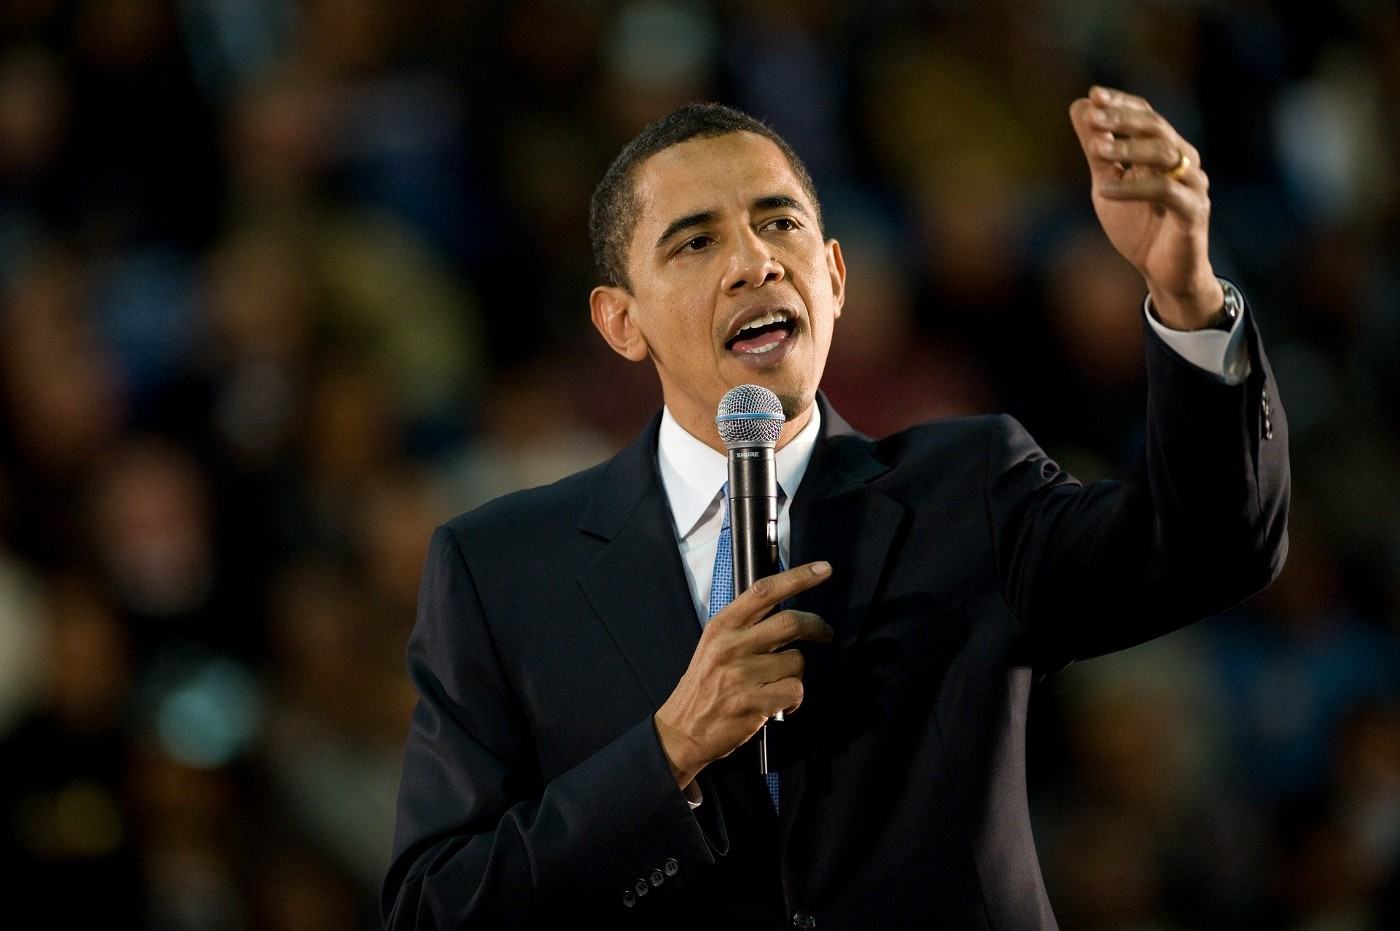 President Obama holds up microphone while delivering remarks to crowd.